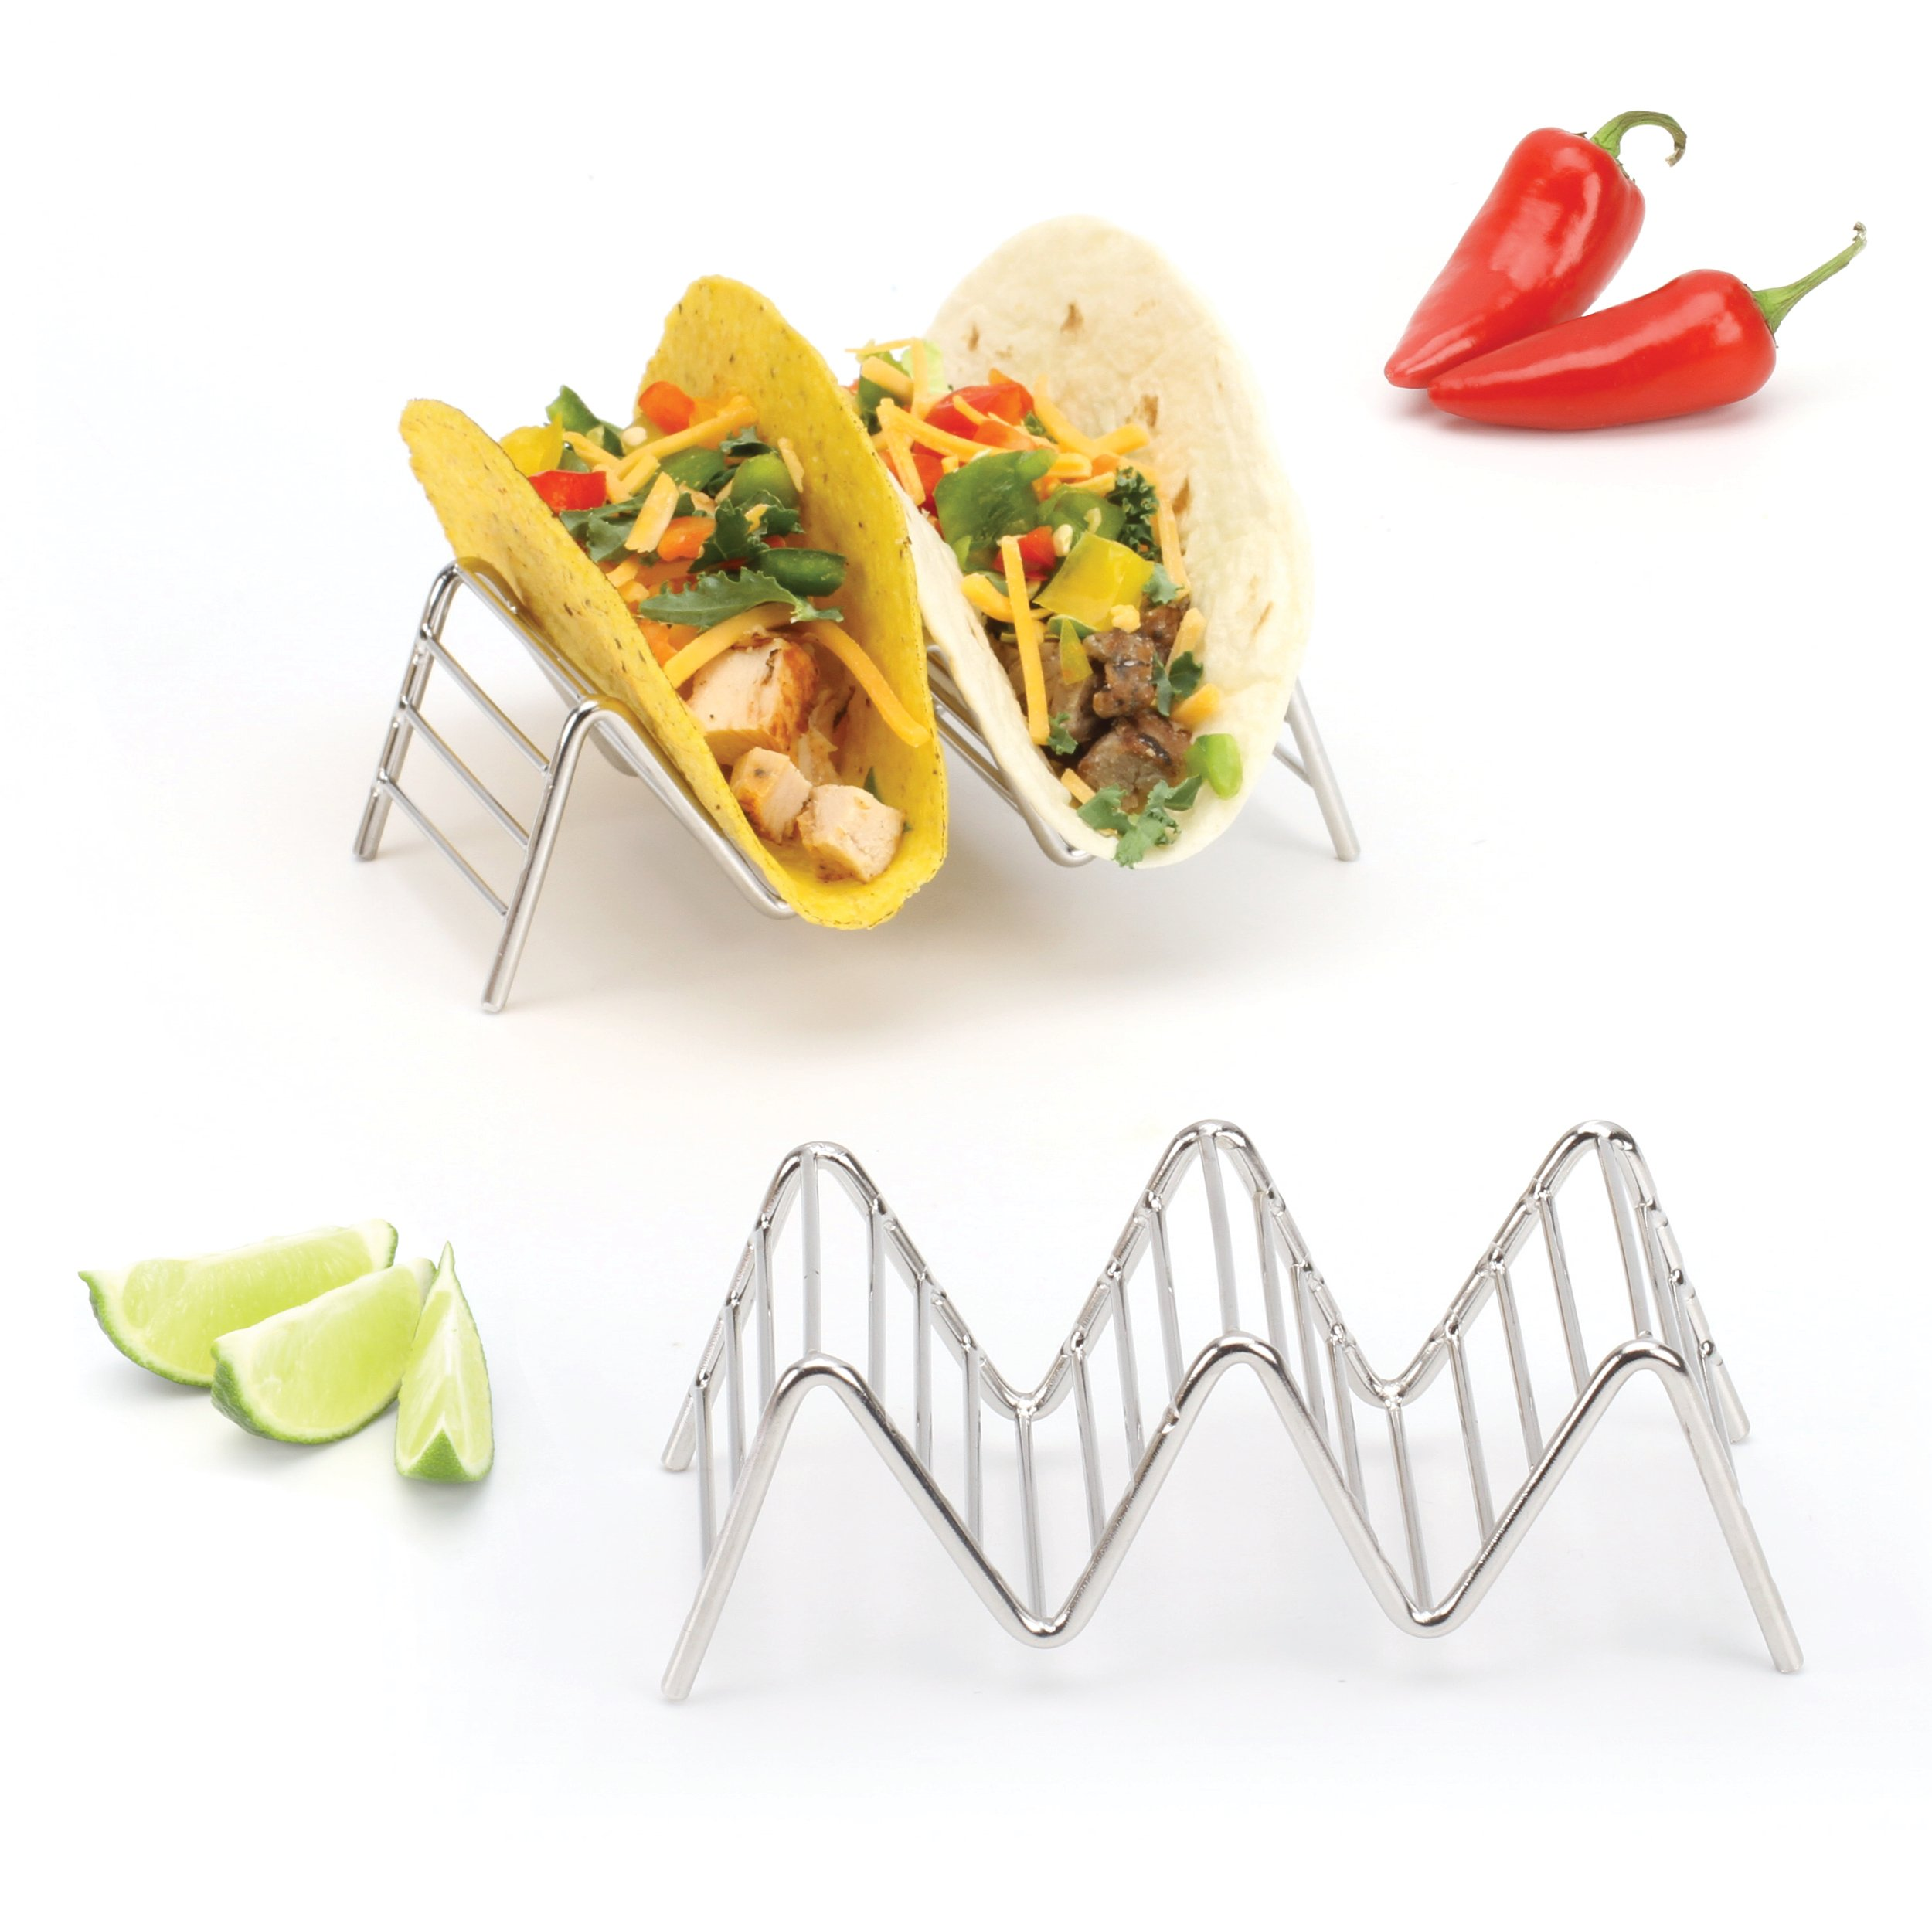 2 Lb. Depot Taco Shell Holder, Stainless Steel Taco Rack Hard Soft Taco's, 2 Pack (Holds 2 or 3)